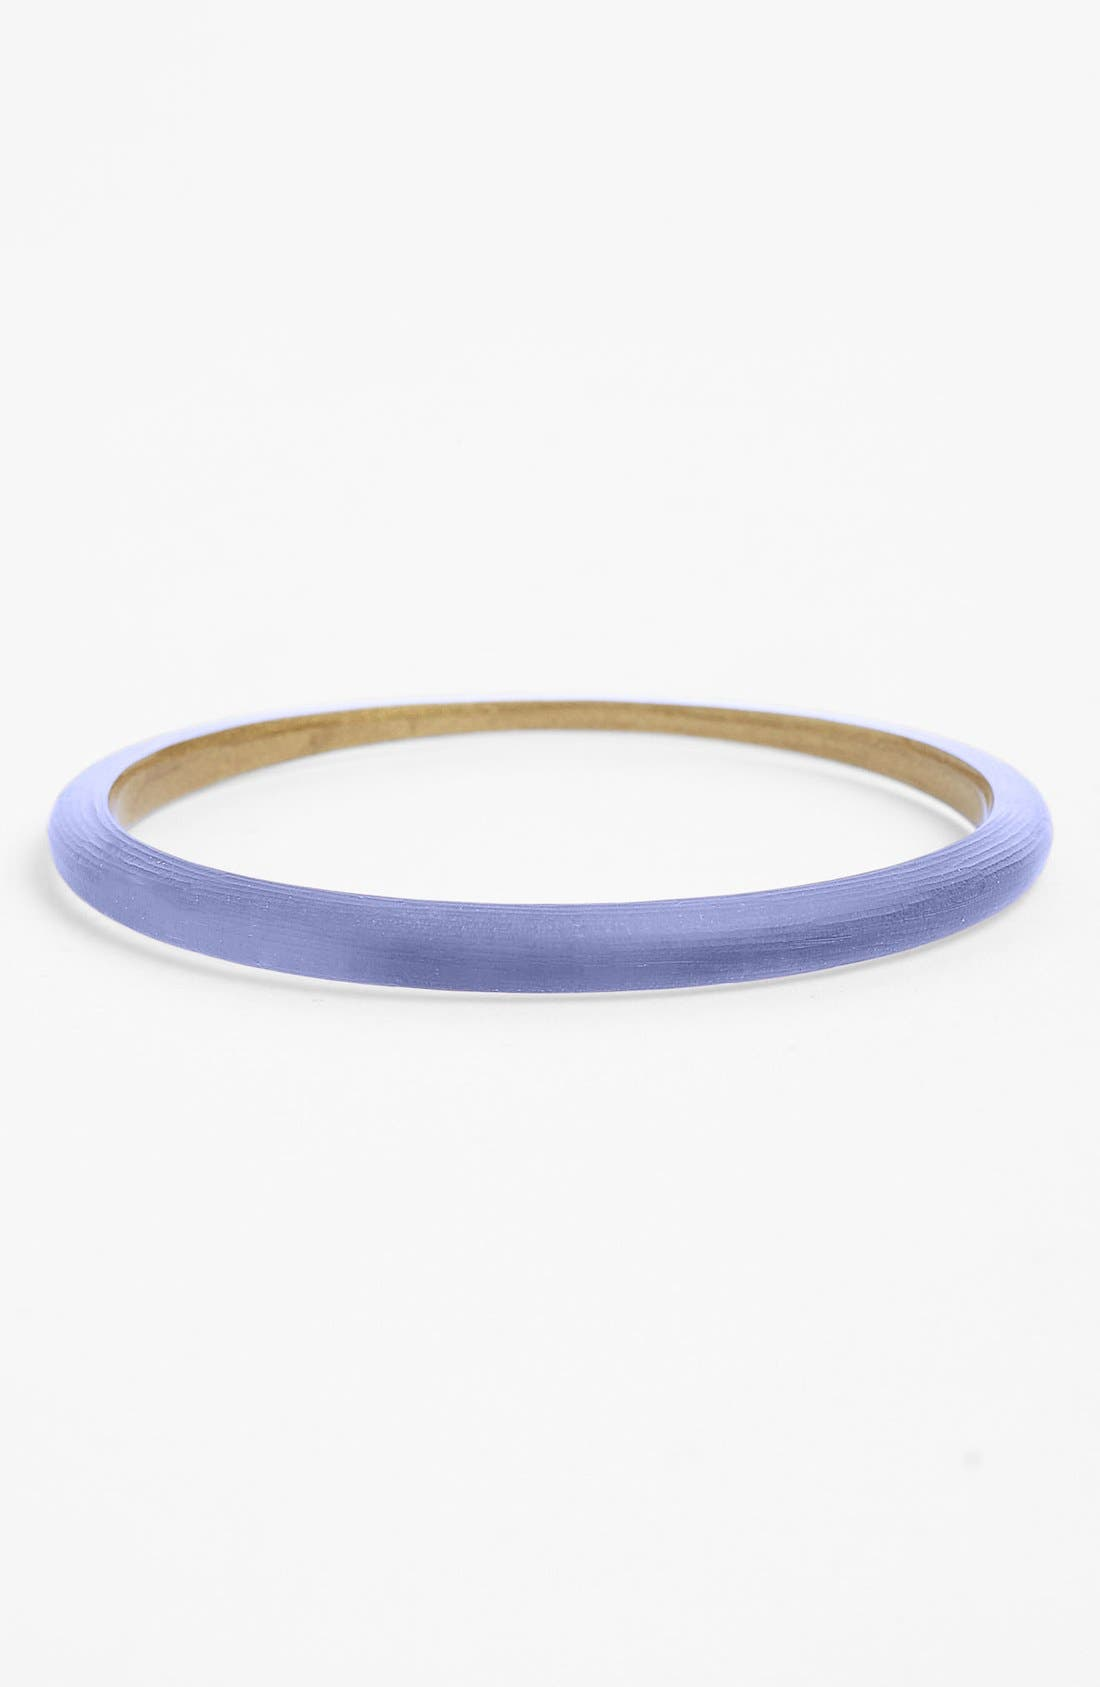 Alternate Image 1 Selected - Alexis Bittar Extra Skinny Tapered Bangle